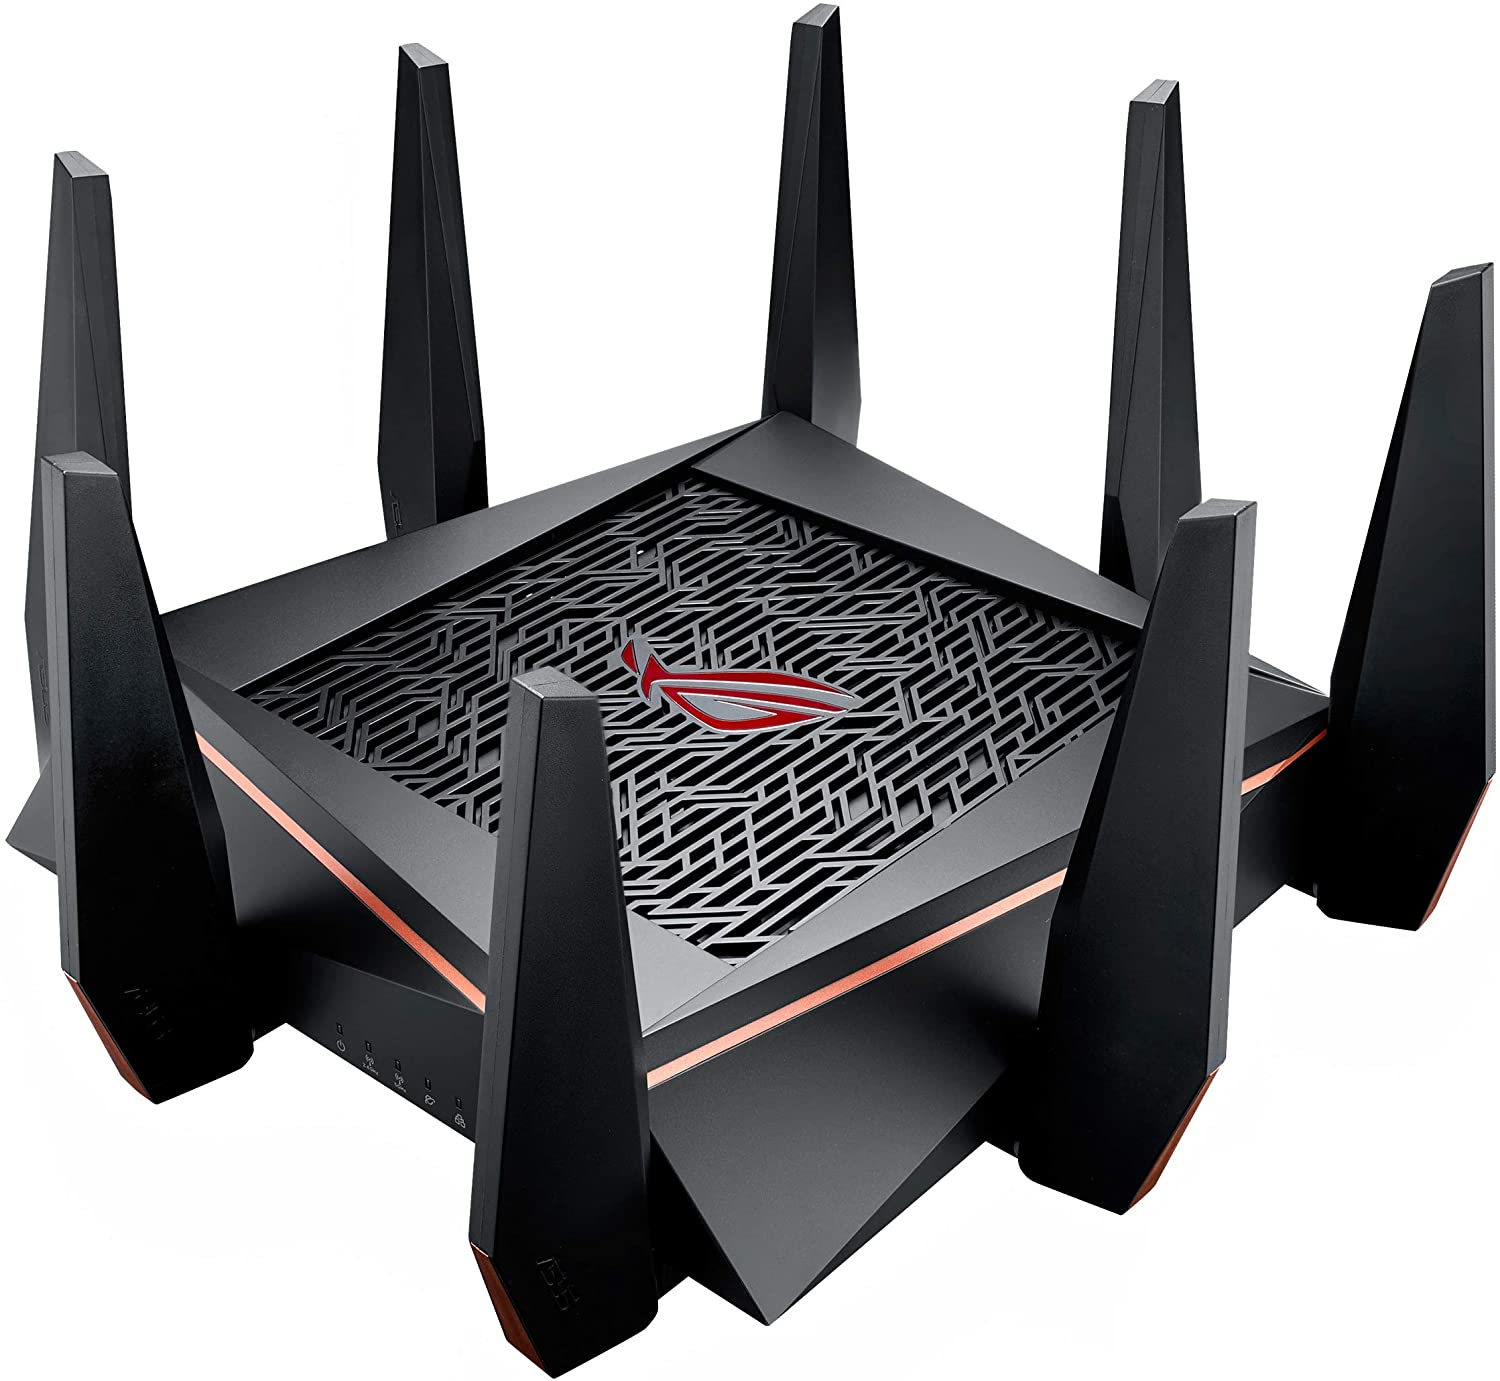 Asus ROG Rapture GT-AC5300 Extreme Gaming Router